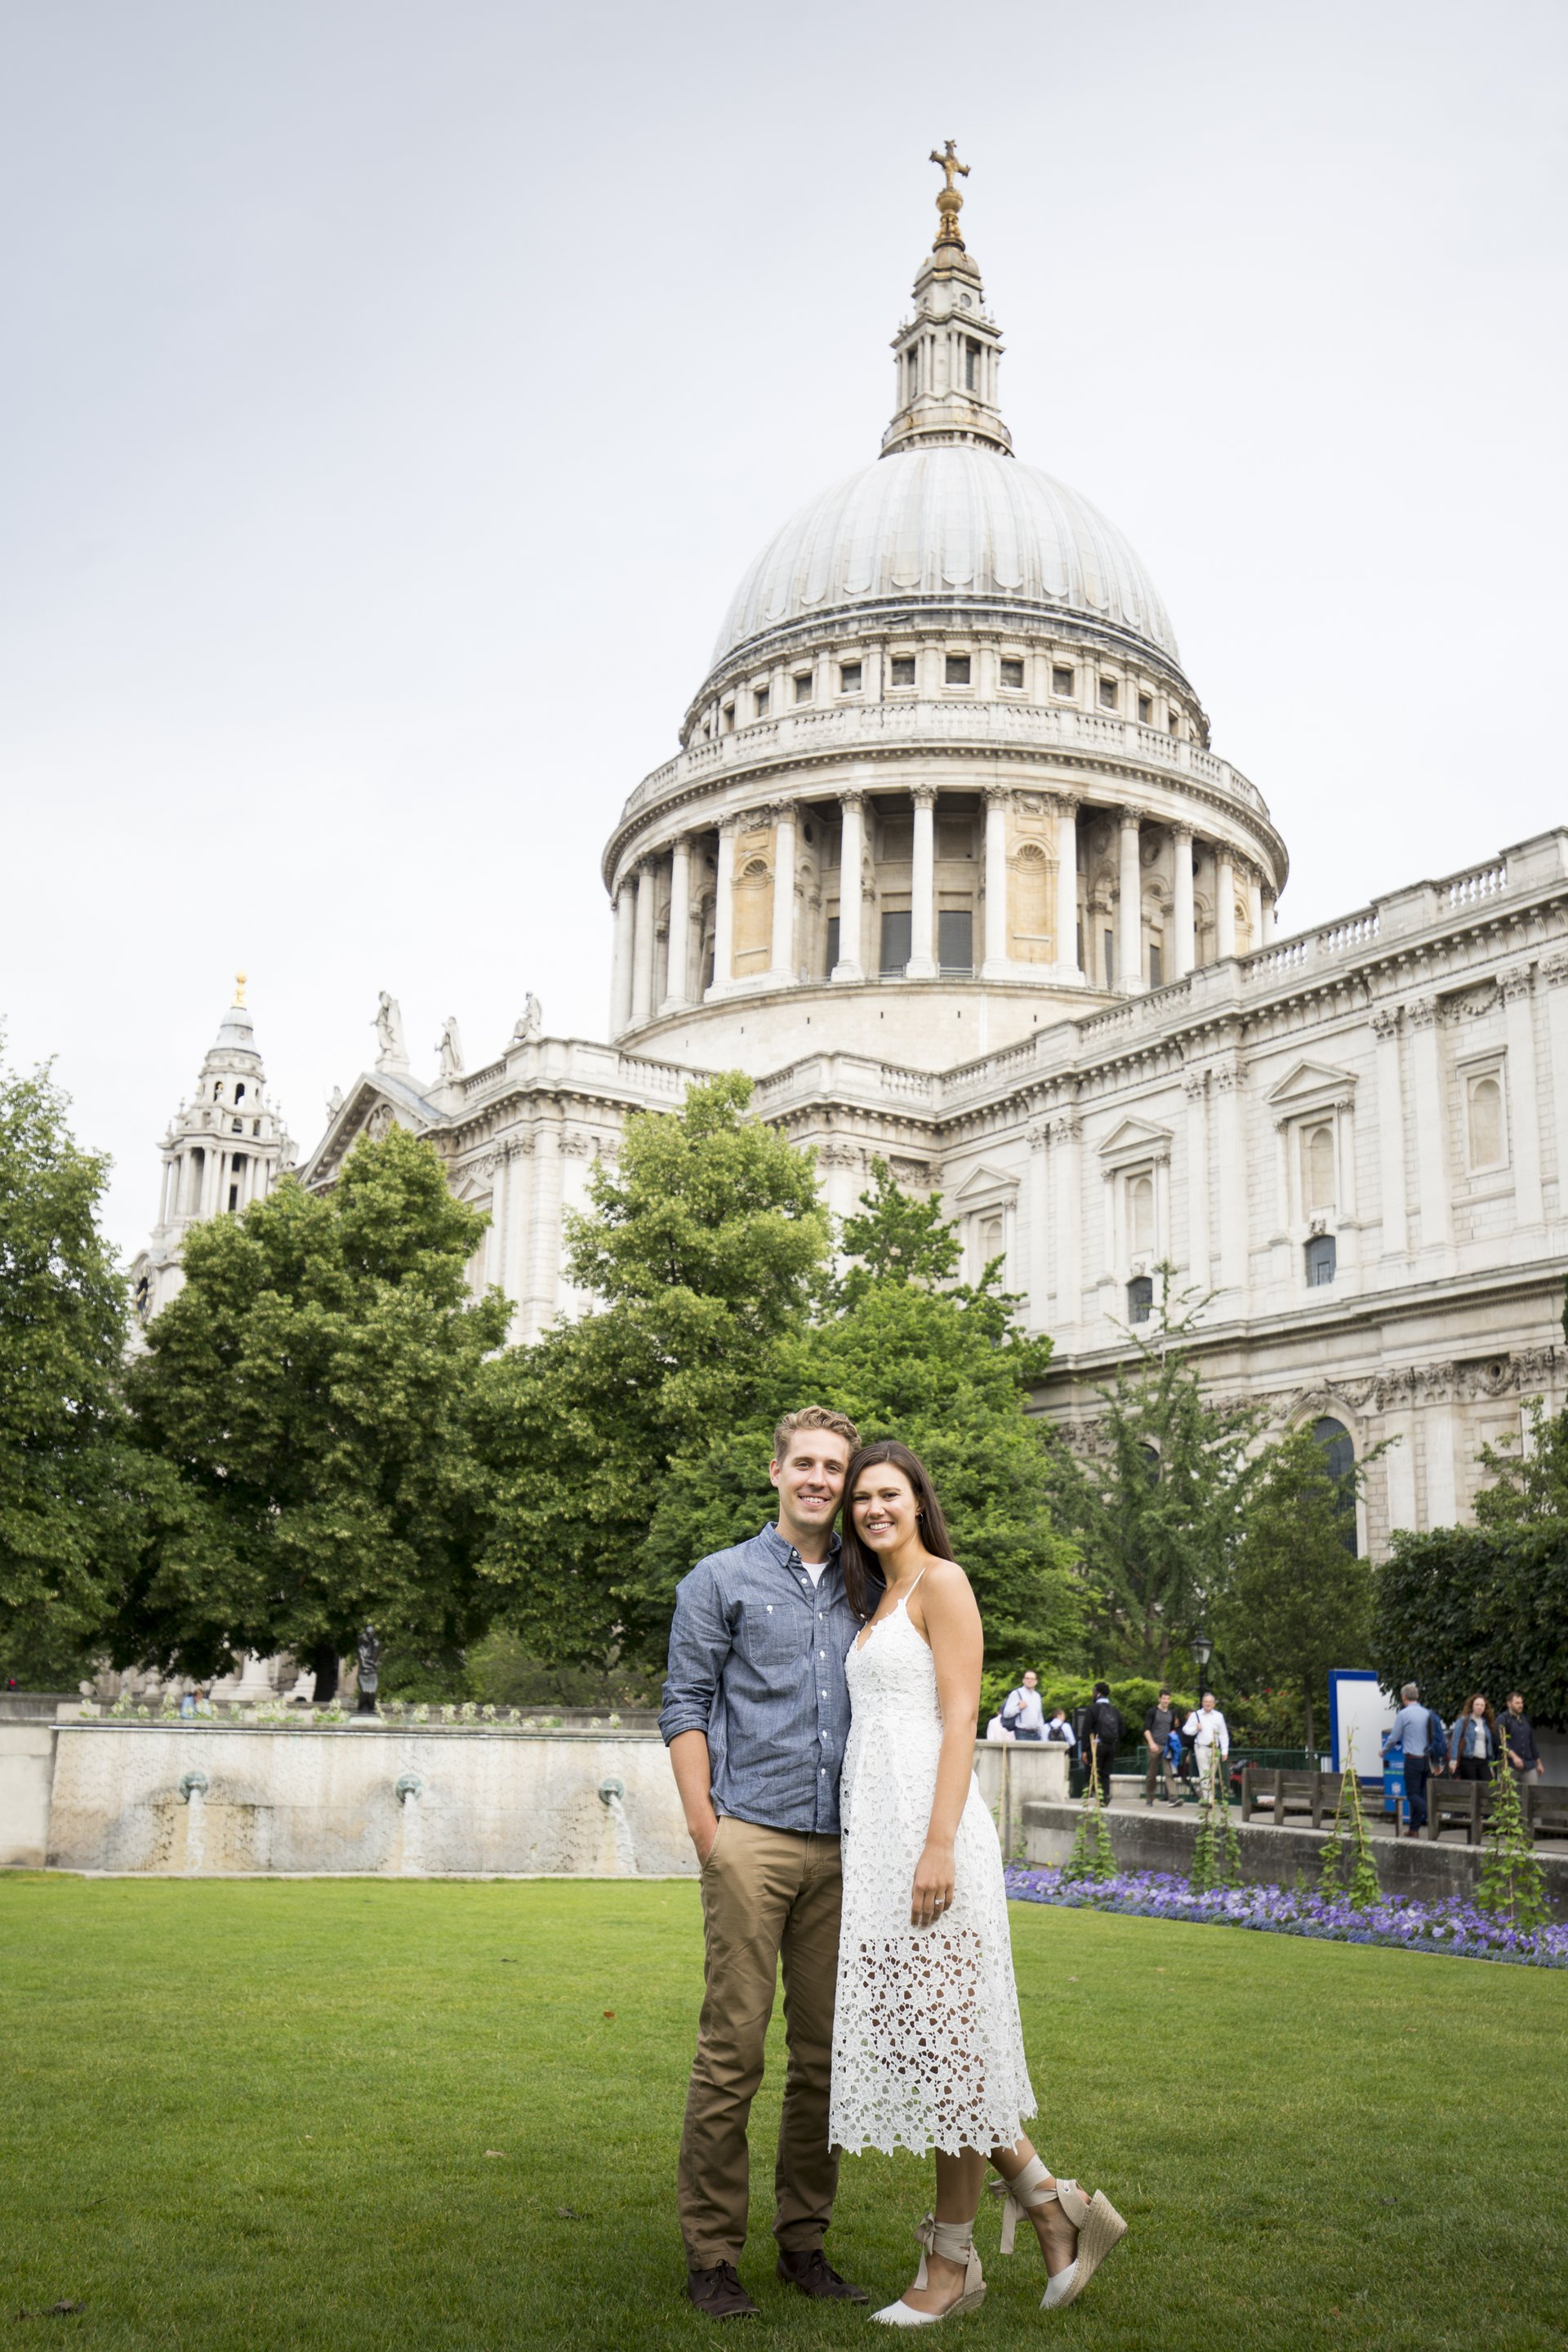 London-UK-travel-story-Flytographer-10